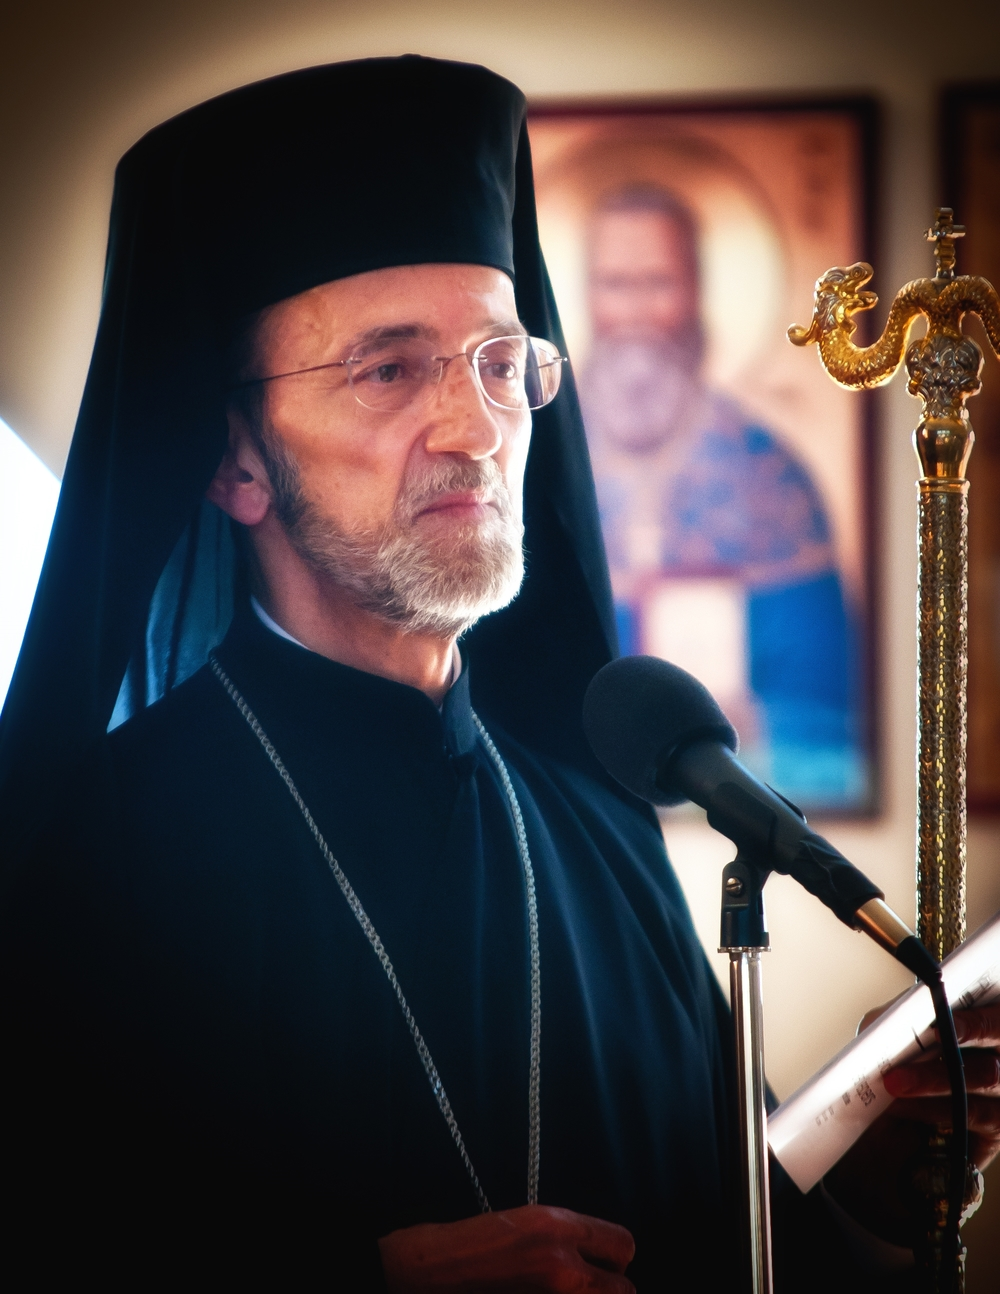 His Eminence Metropolitan Gerasimos of San Francisco.